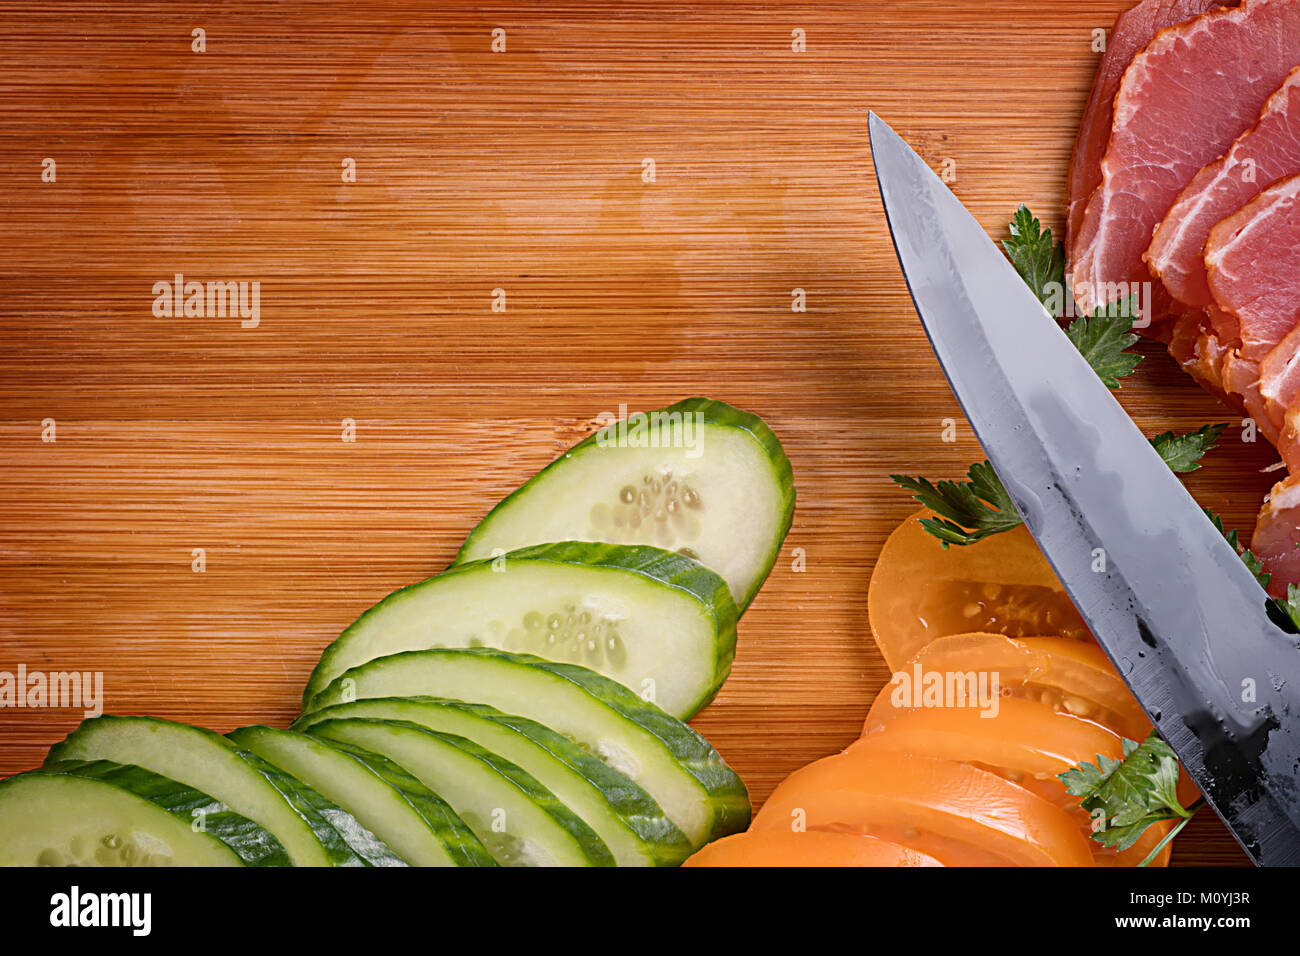 Kitchen knife, ham and vegetables on wet cutting board. Food theme still life with copy space - Stock Image